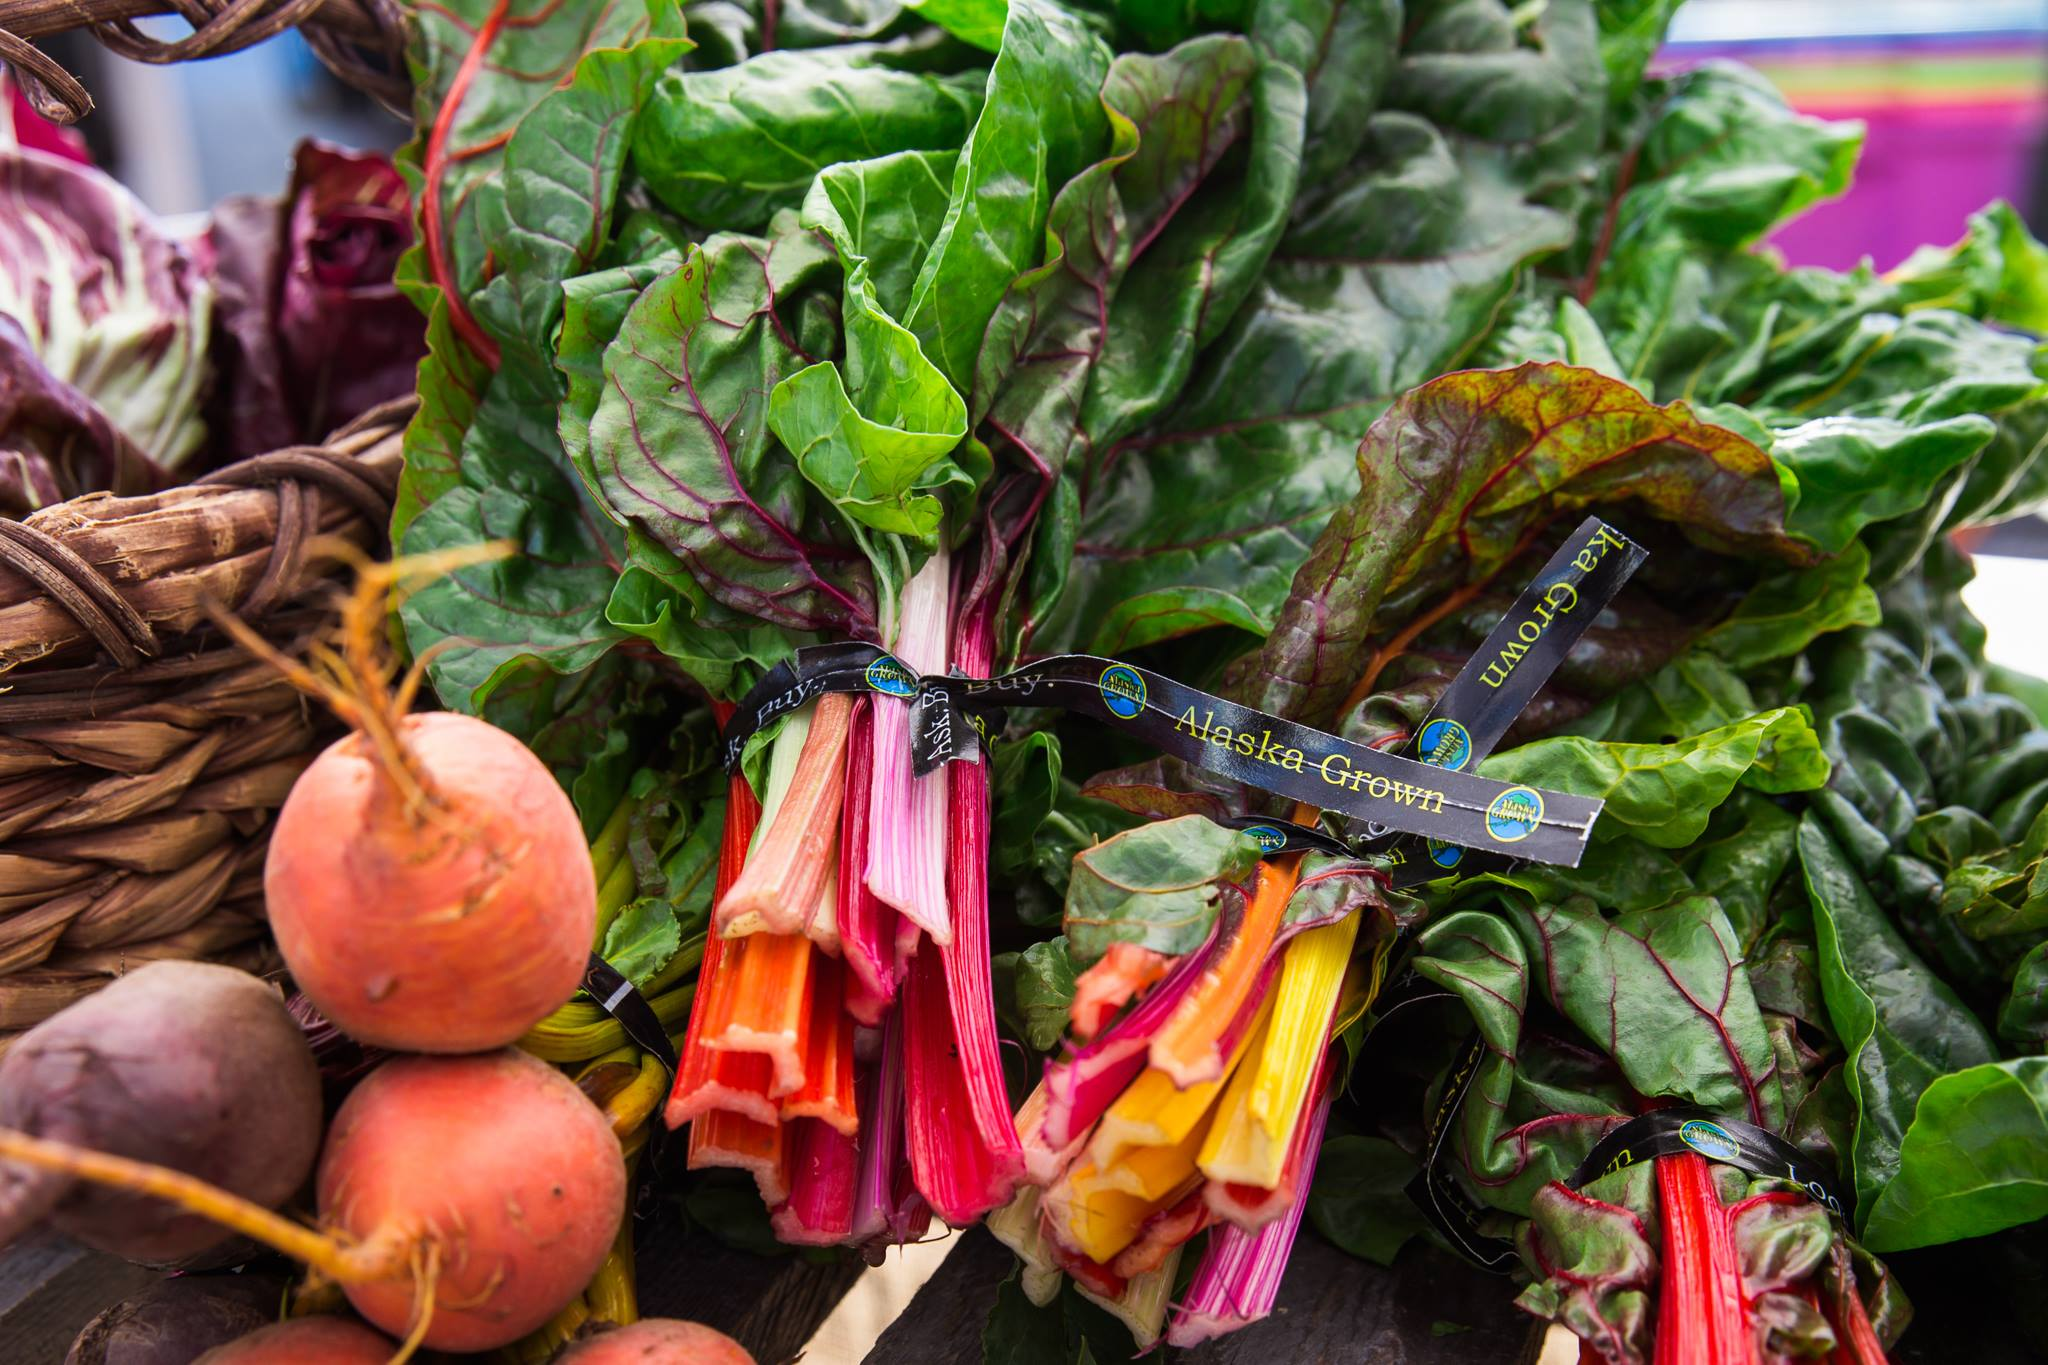 People, Planet and Profits: Pillars for Building Sustainable & Equitable Food Systems